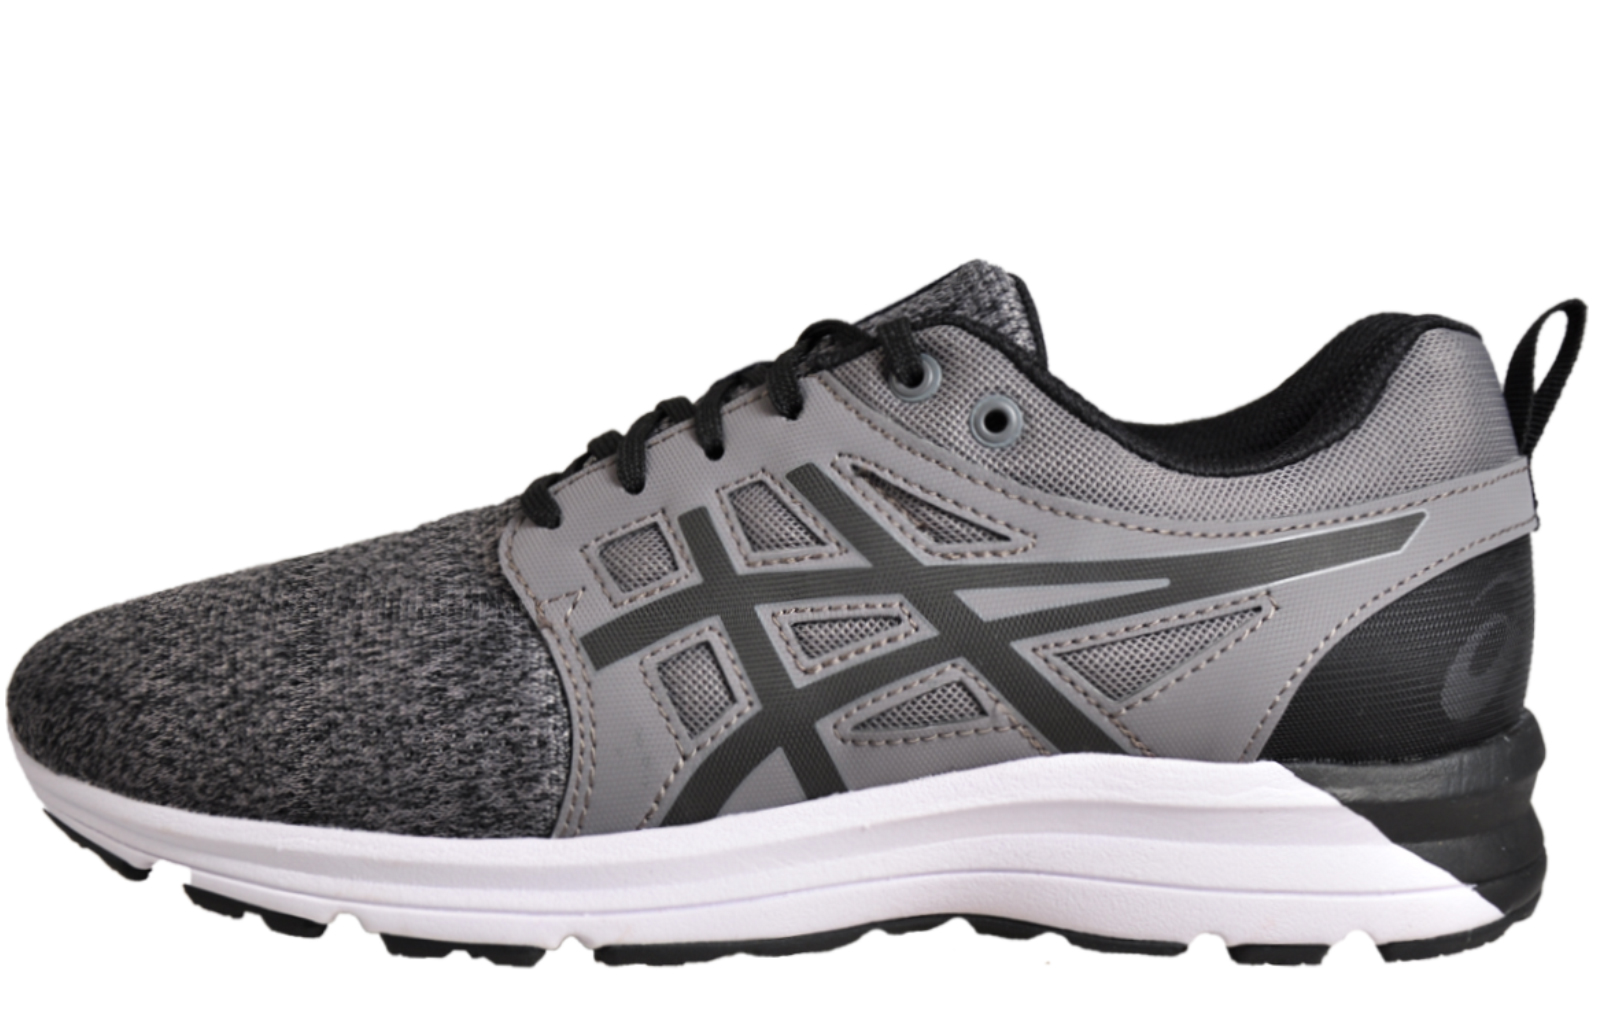 2f888aeb6d5e6 Asics Gel Torrance Men s Running Shoes Fitness Gym Workout Trainers ...